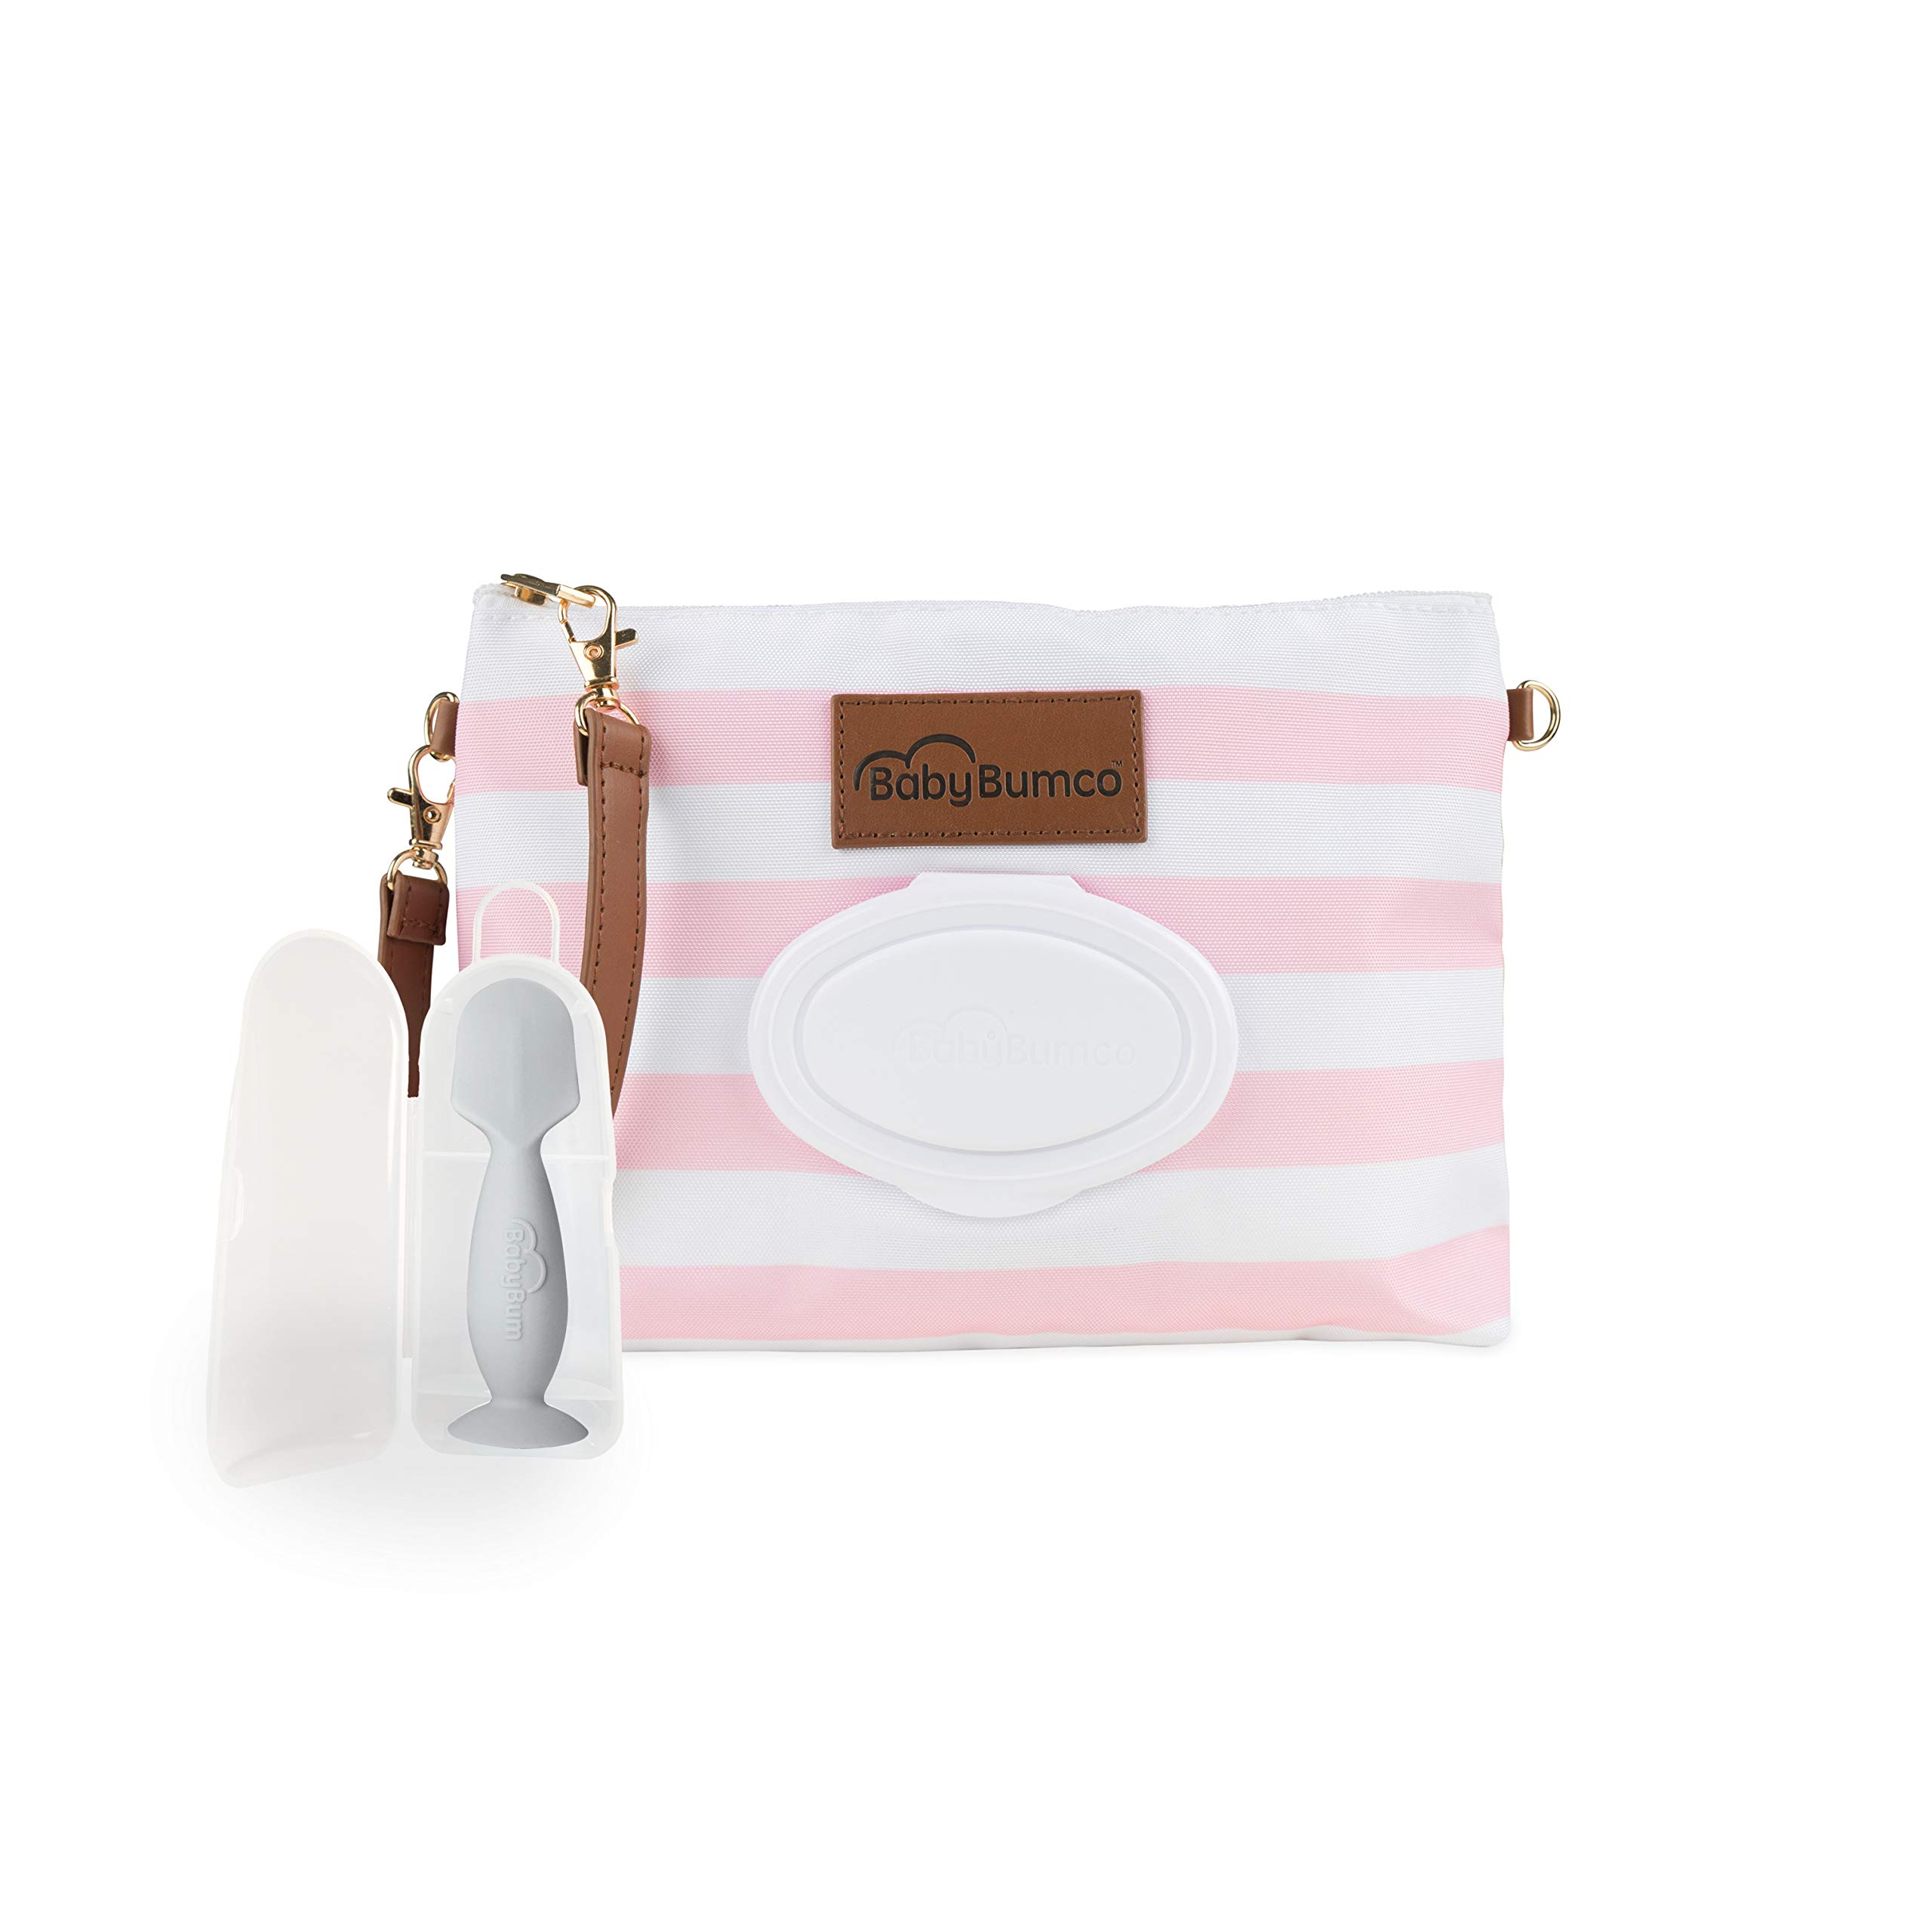 Diaper Clutch Bag and Mini Rash Cream Applicator with Travel Case, Soft Flexible Silicone - Water Resistant; Lightweight; Refillable Wipes Dispenser; Portable Changing Kit (Pretty Pink + Gray)